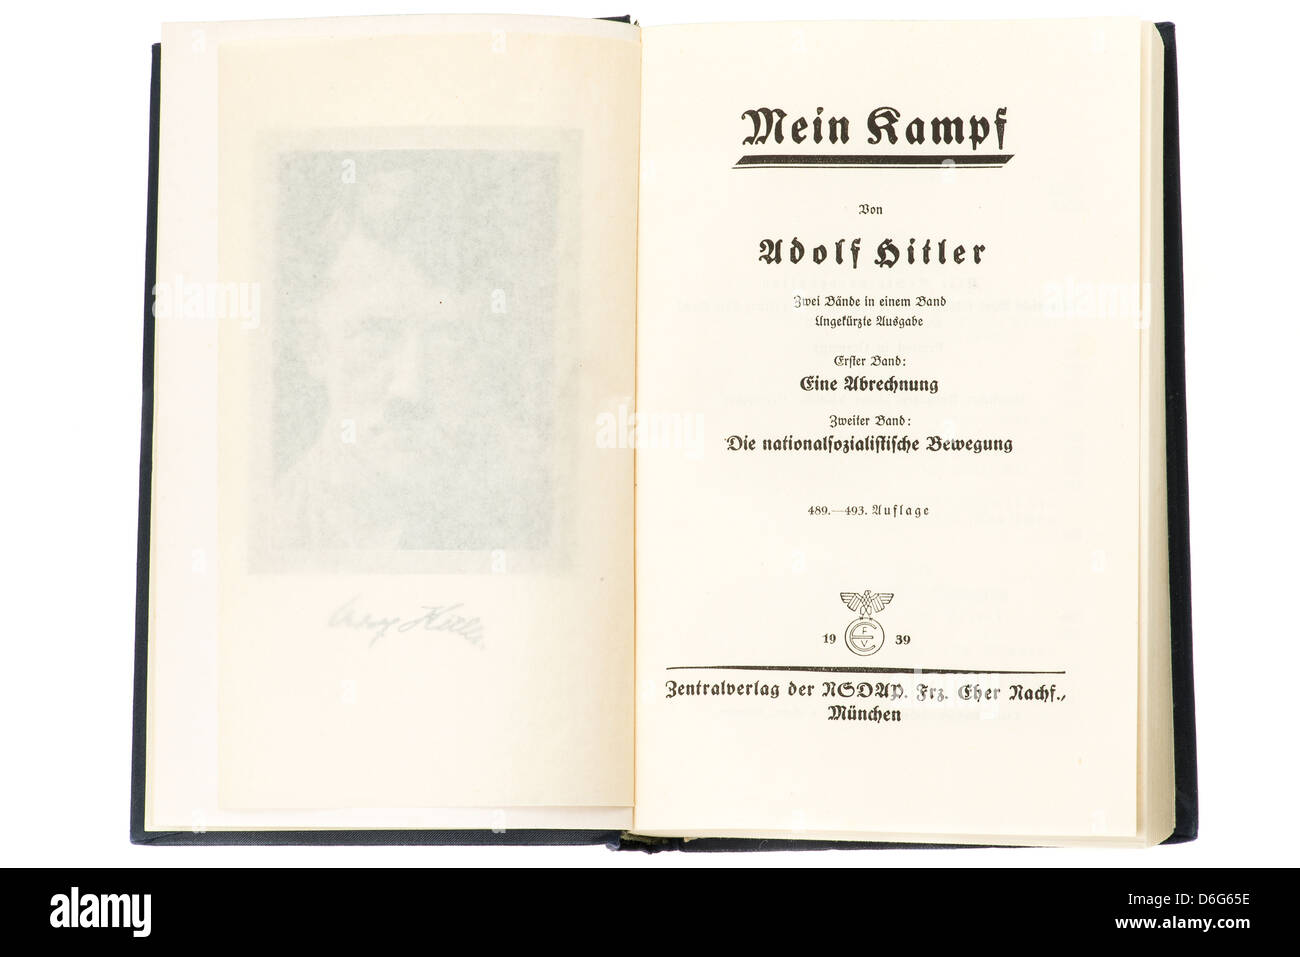 Inside pages of the hardback book Mein Kampf by Adolf Hitler, this is the 1939 edition. Studio shot with a white - Stock Image